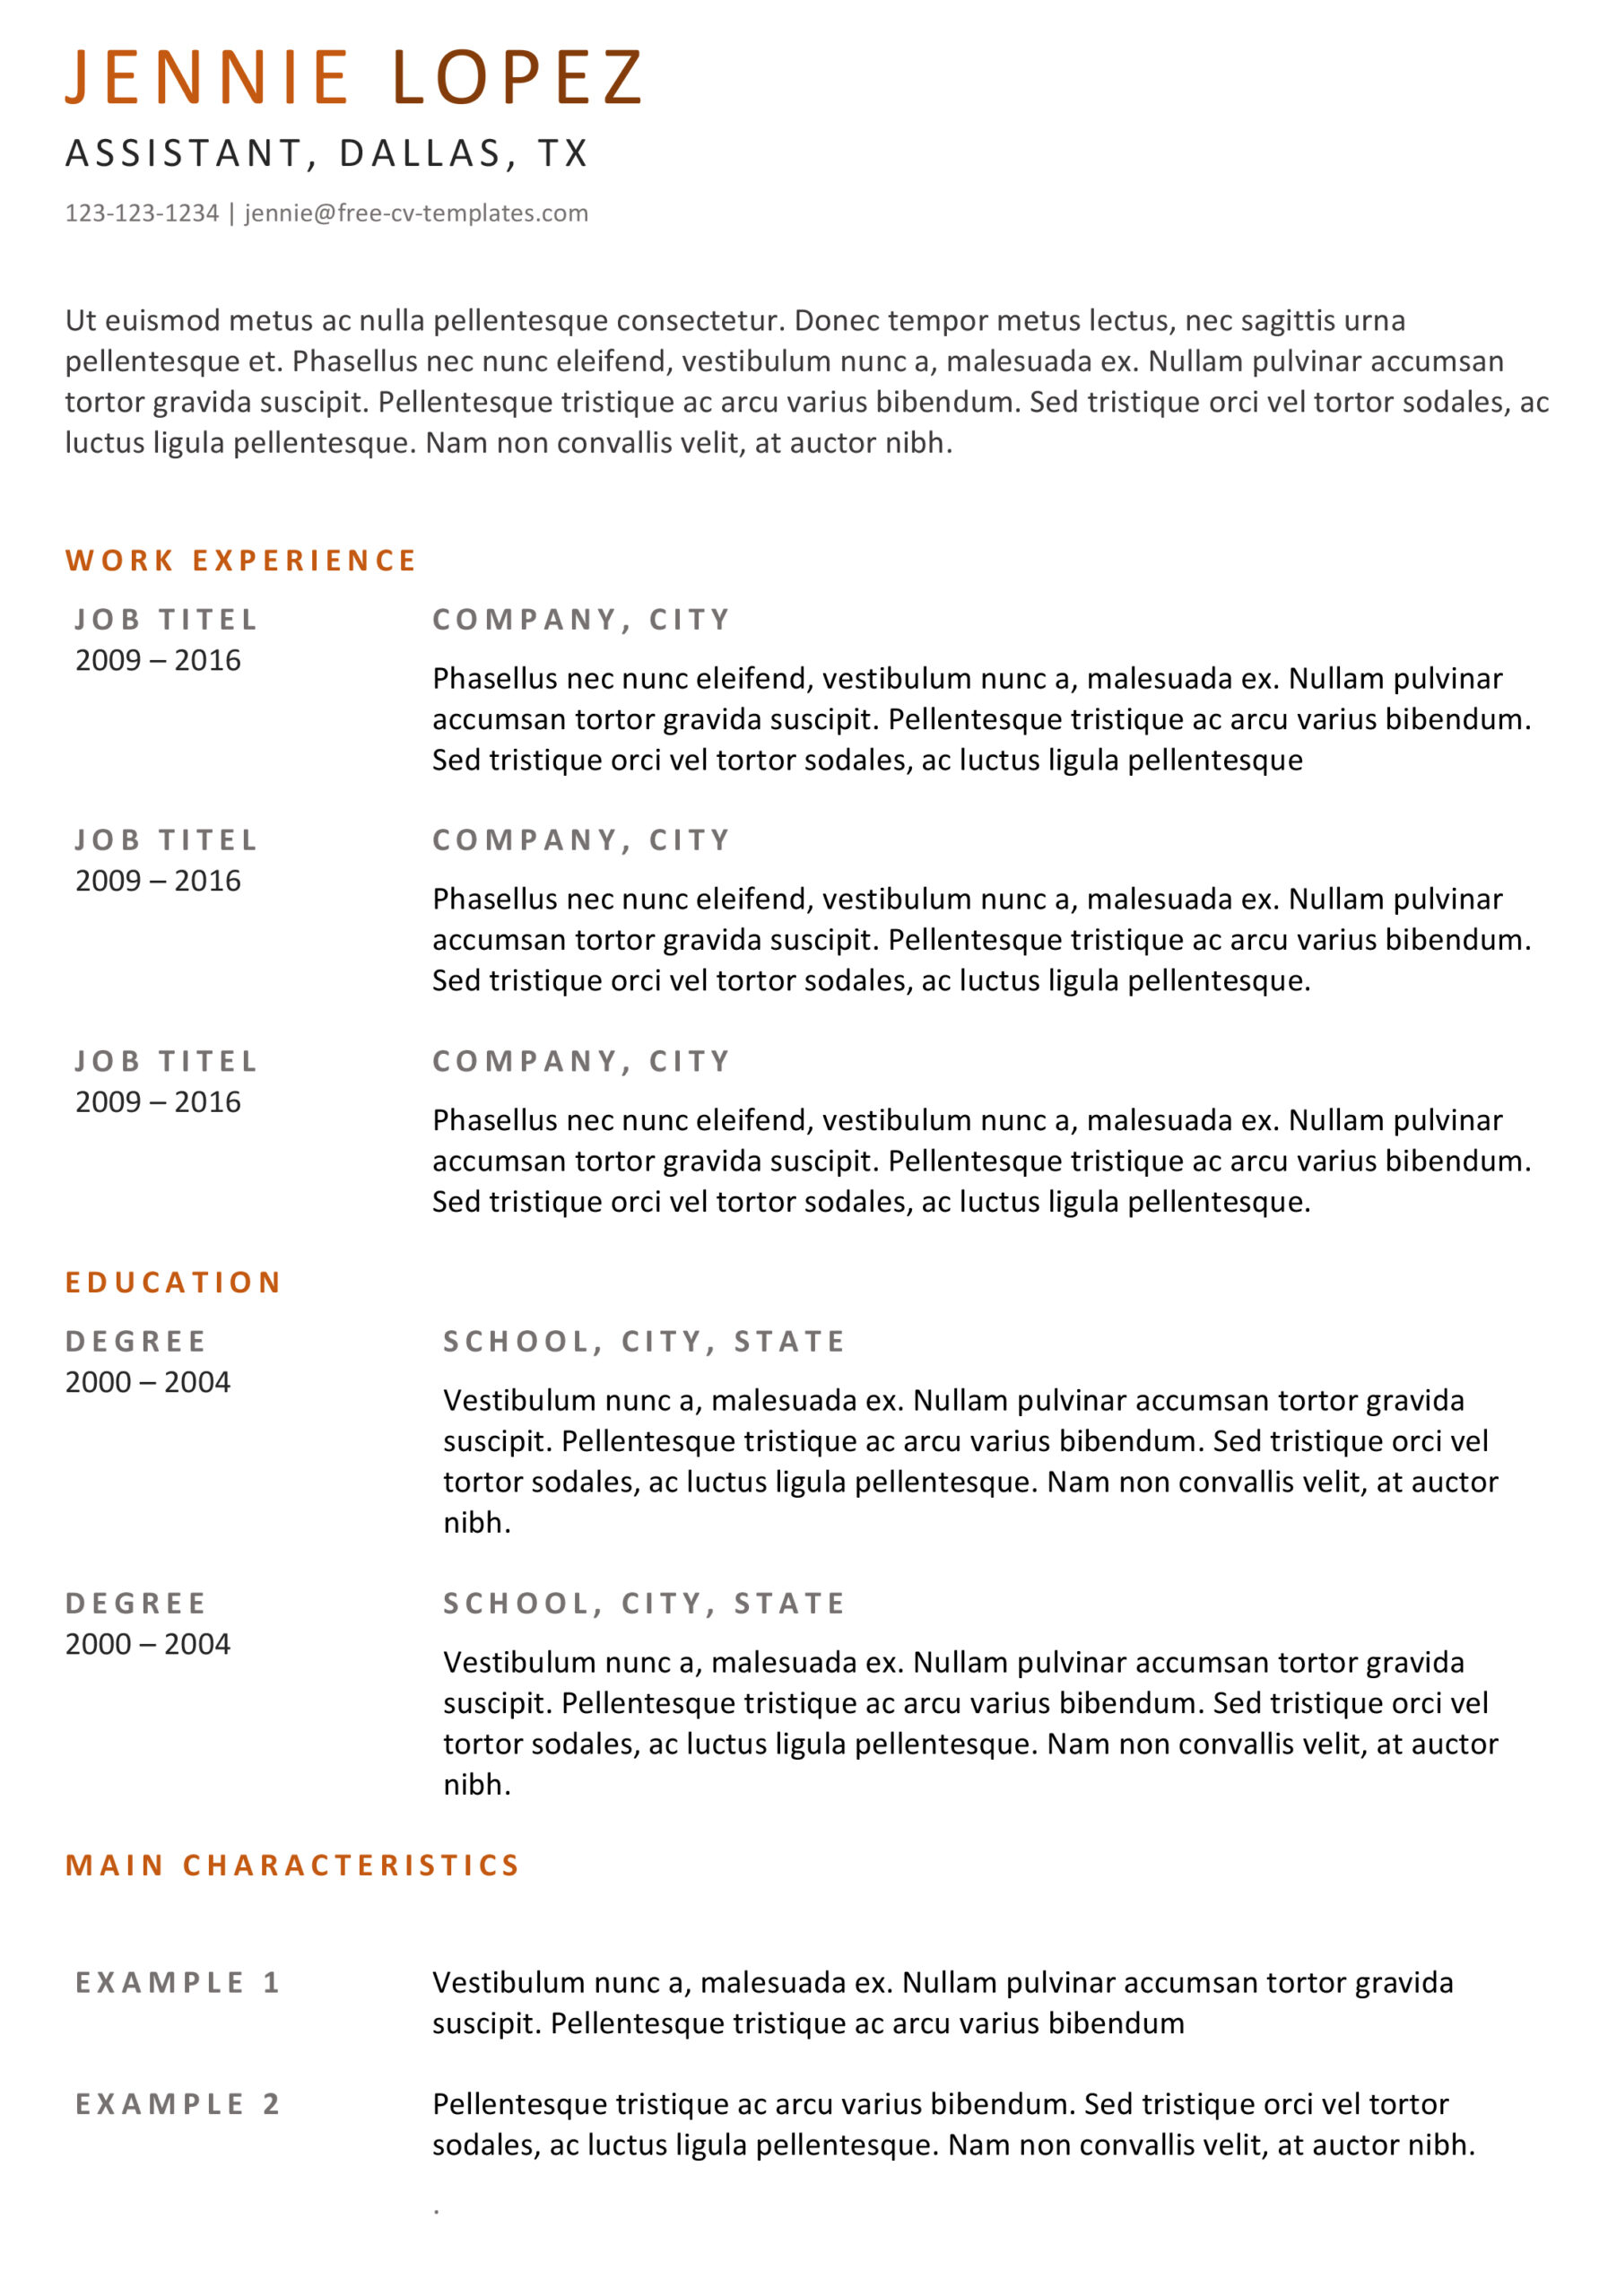 basic cv templates for word land the job with our free simple resume template Resume Simple Resume Template Free Download